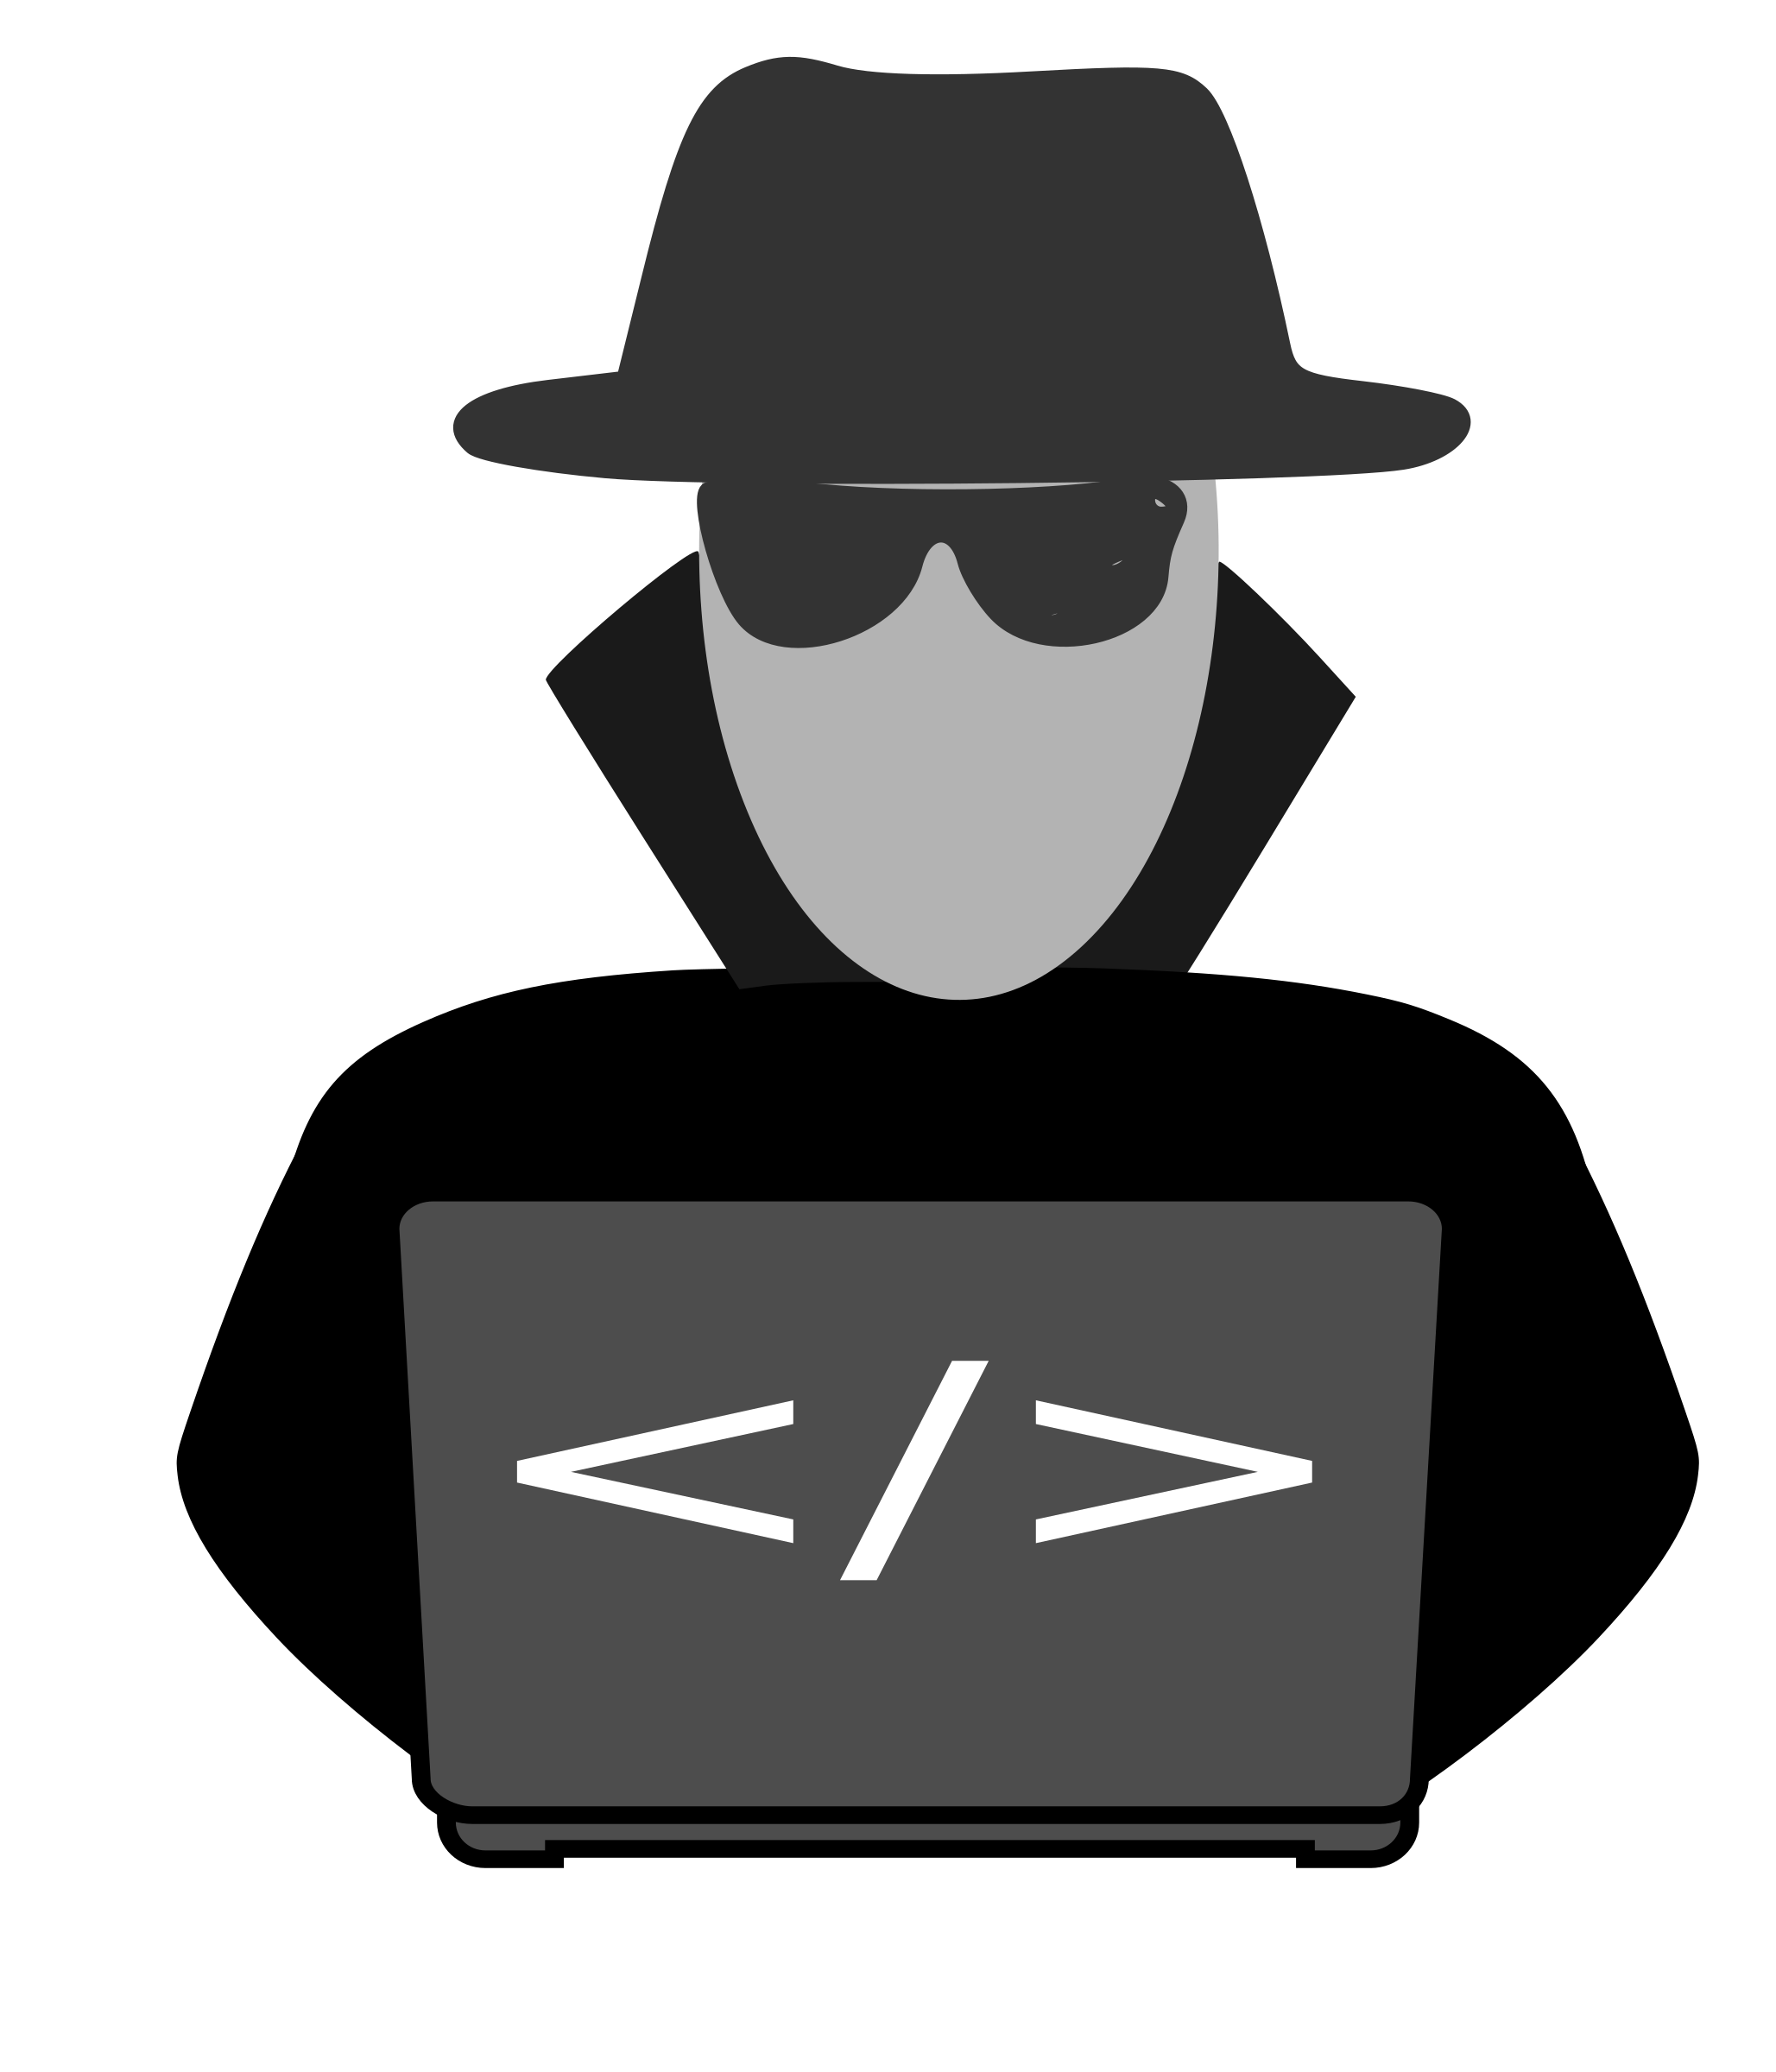 Spy behind computer big. Computers clipart email